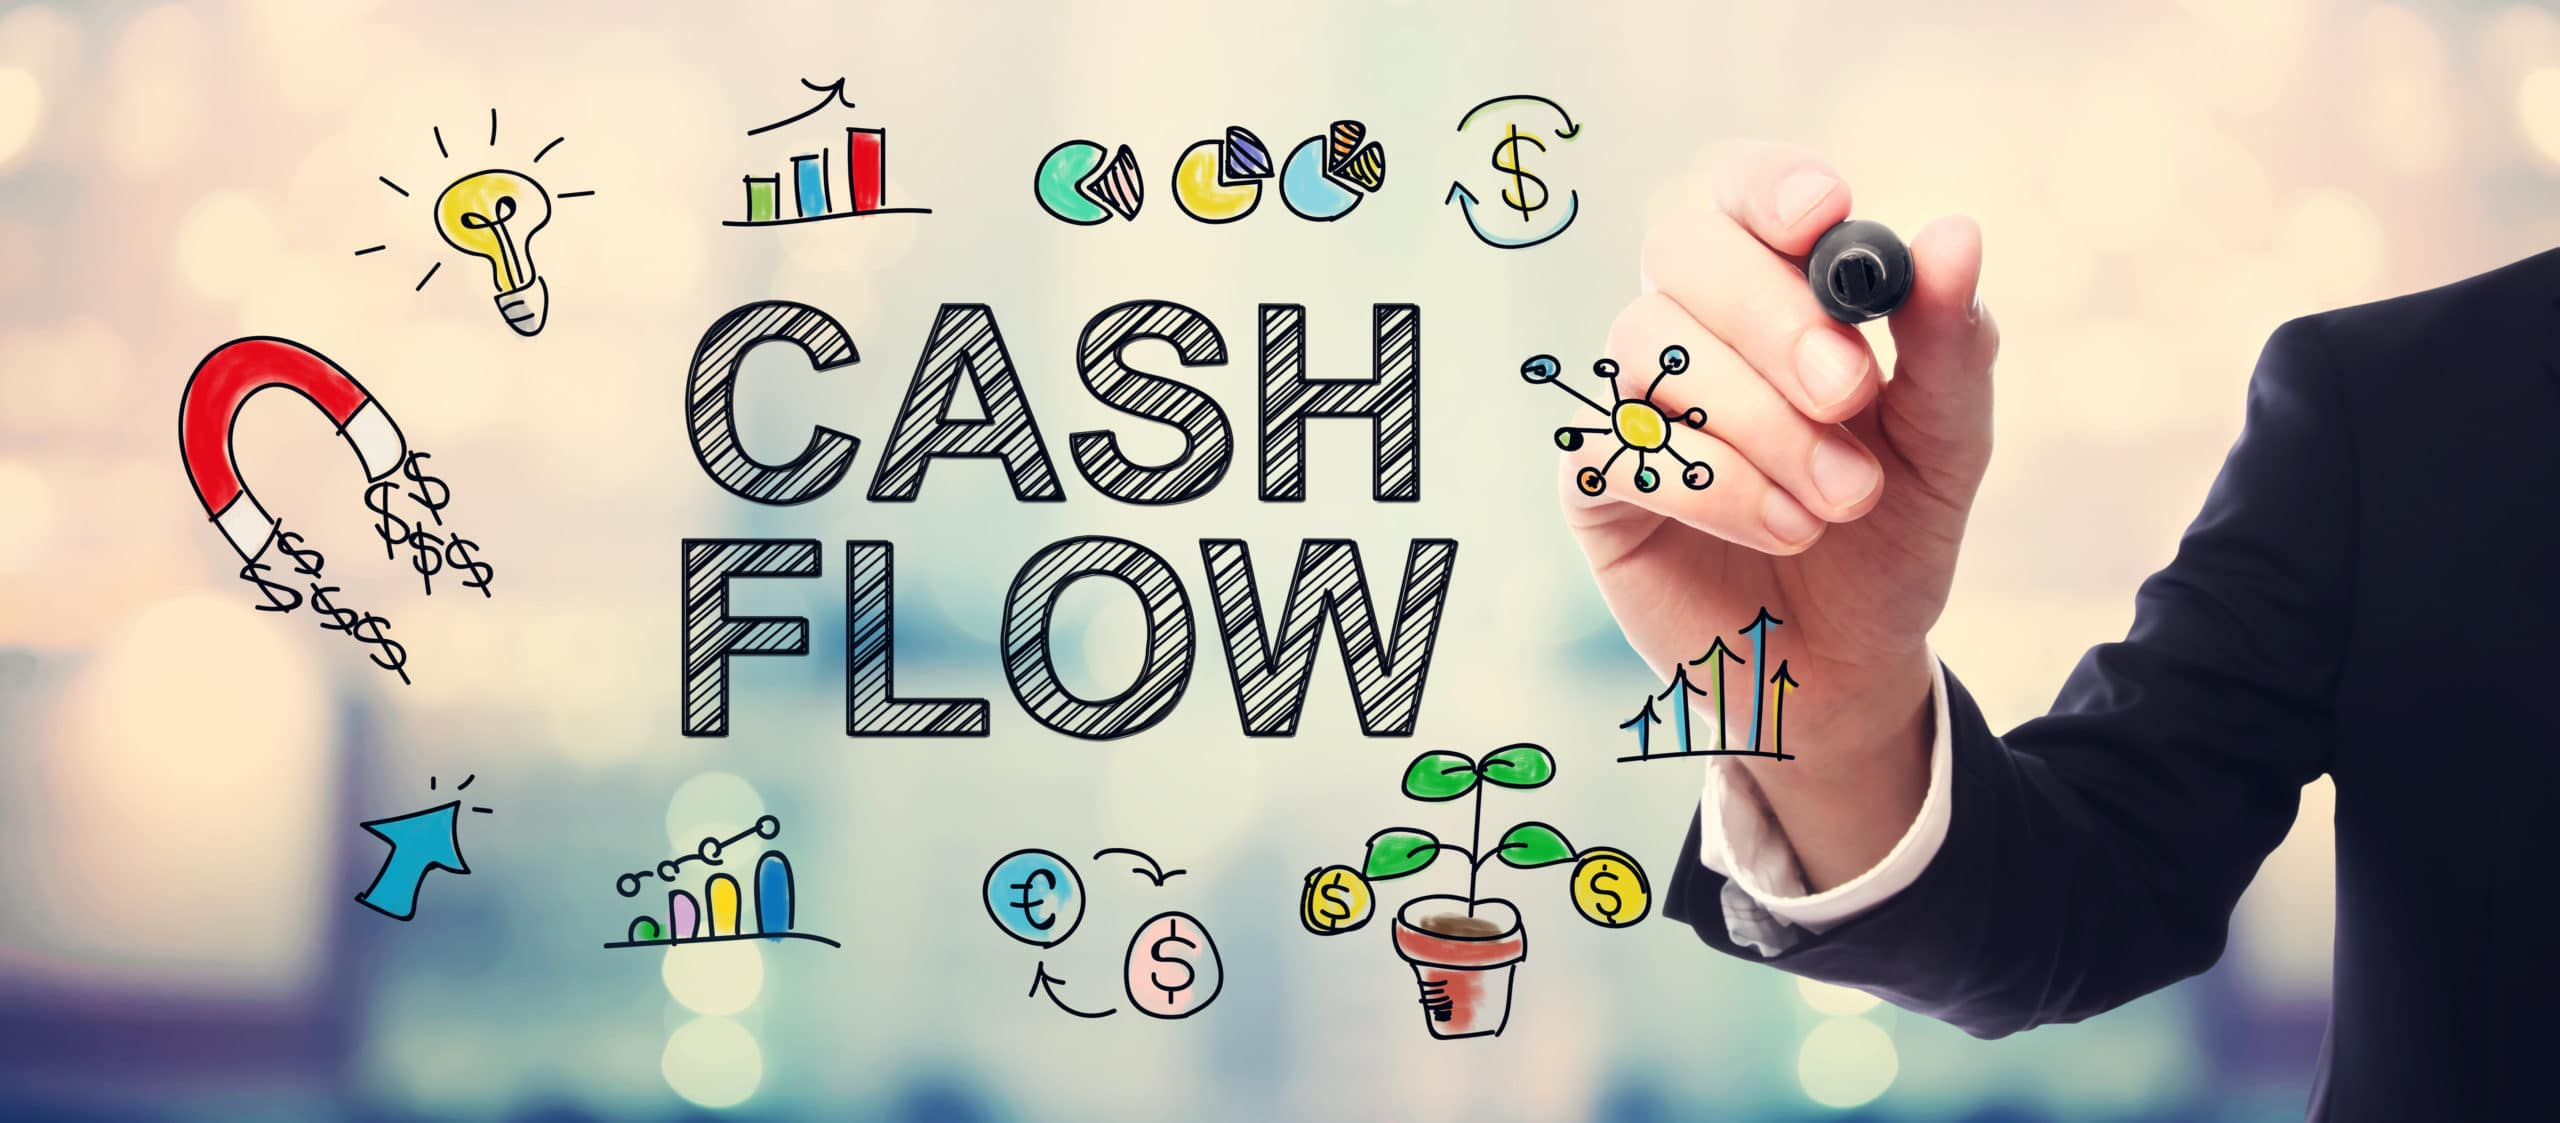 How Does a Startup Prevent Cash Flow Problems